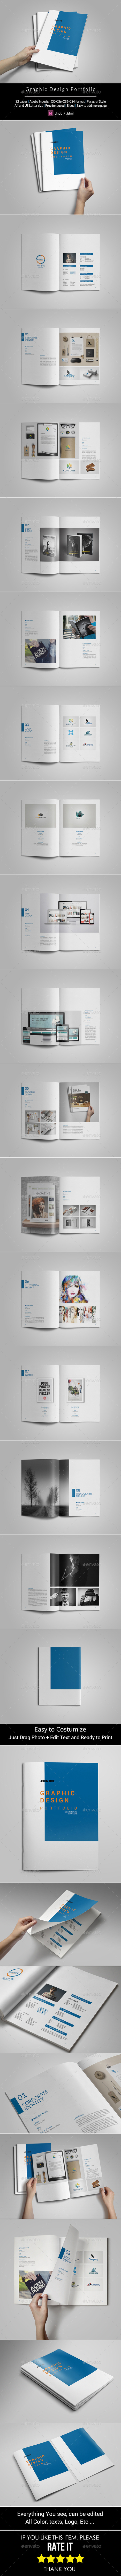 GraphicRiver Portfolio Brochure Template 10543665